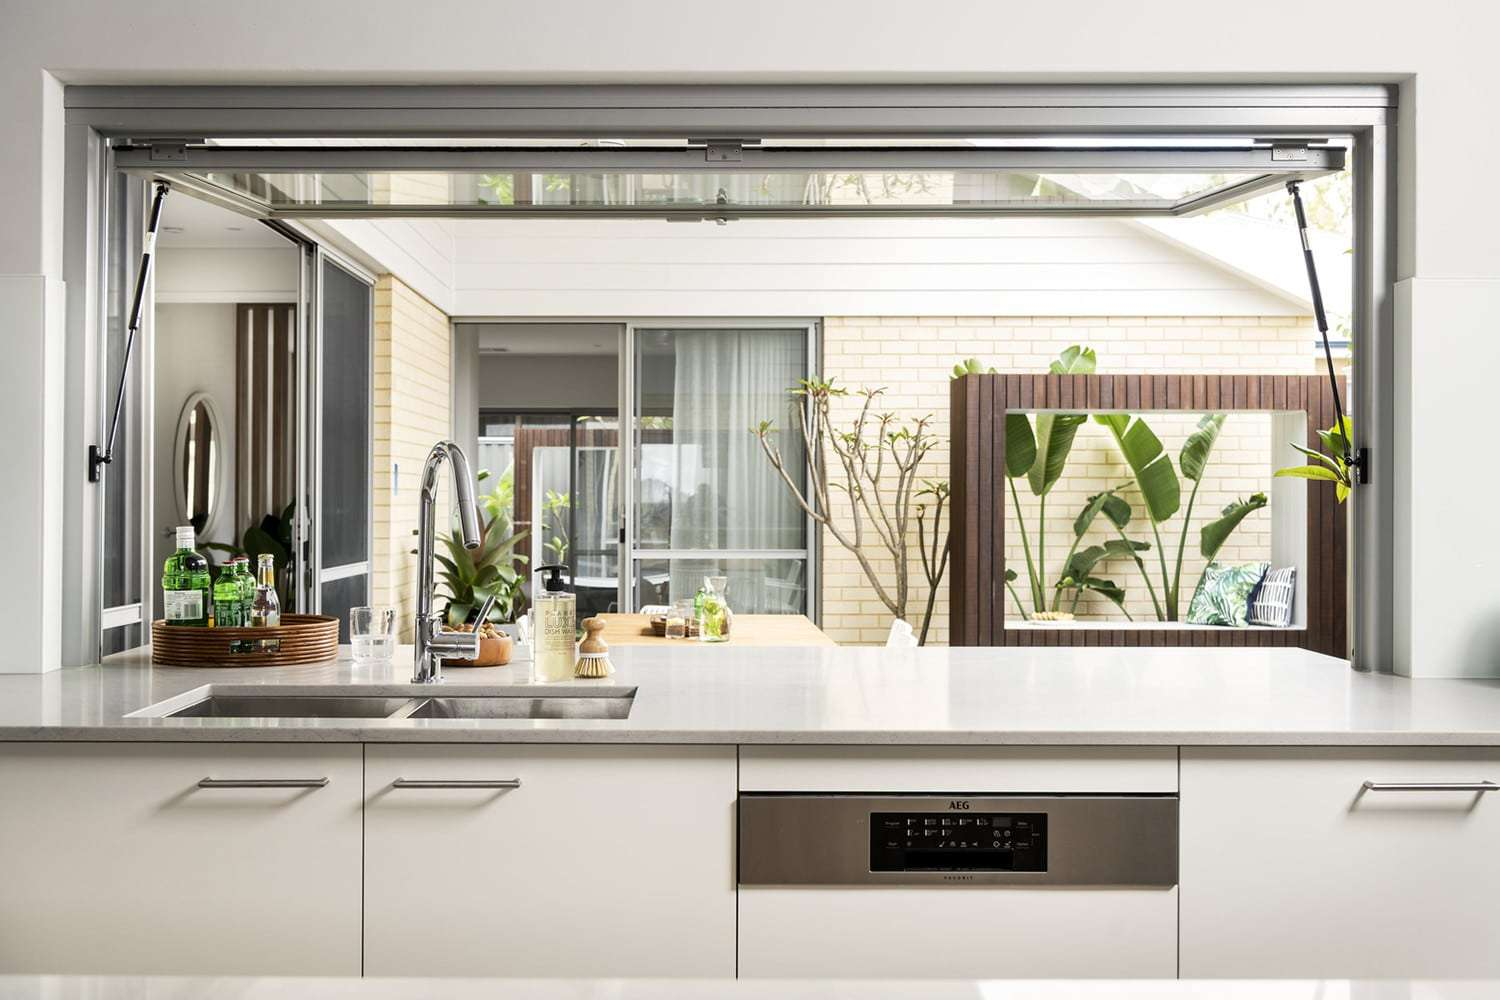 Gas strut awning window by Jason Windows, pictured in The Noosa by Dale Alcock Homes